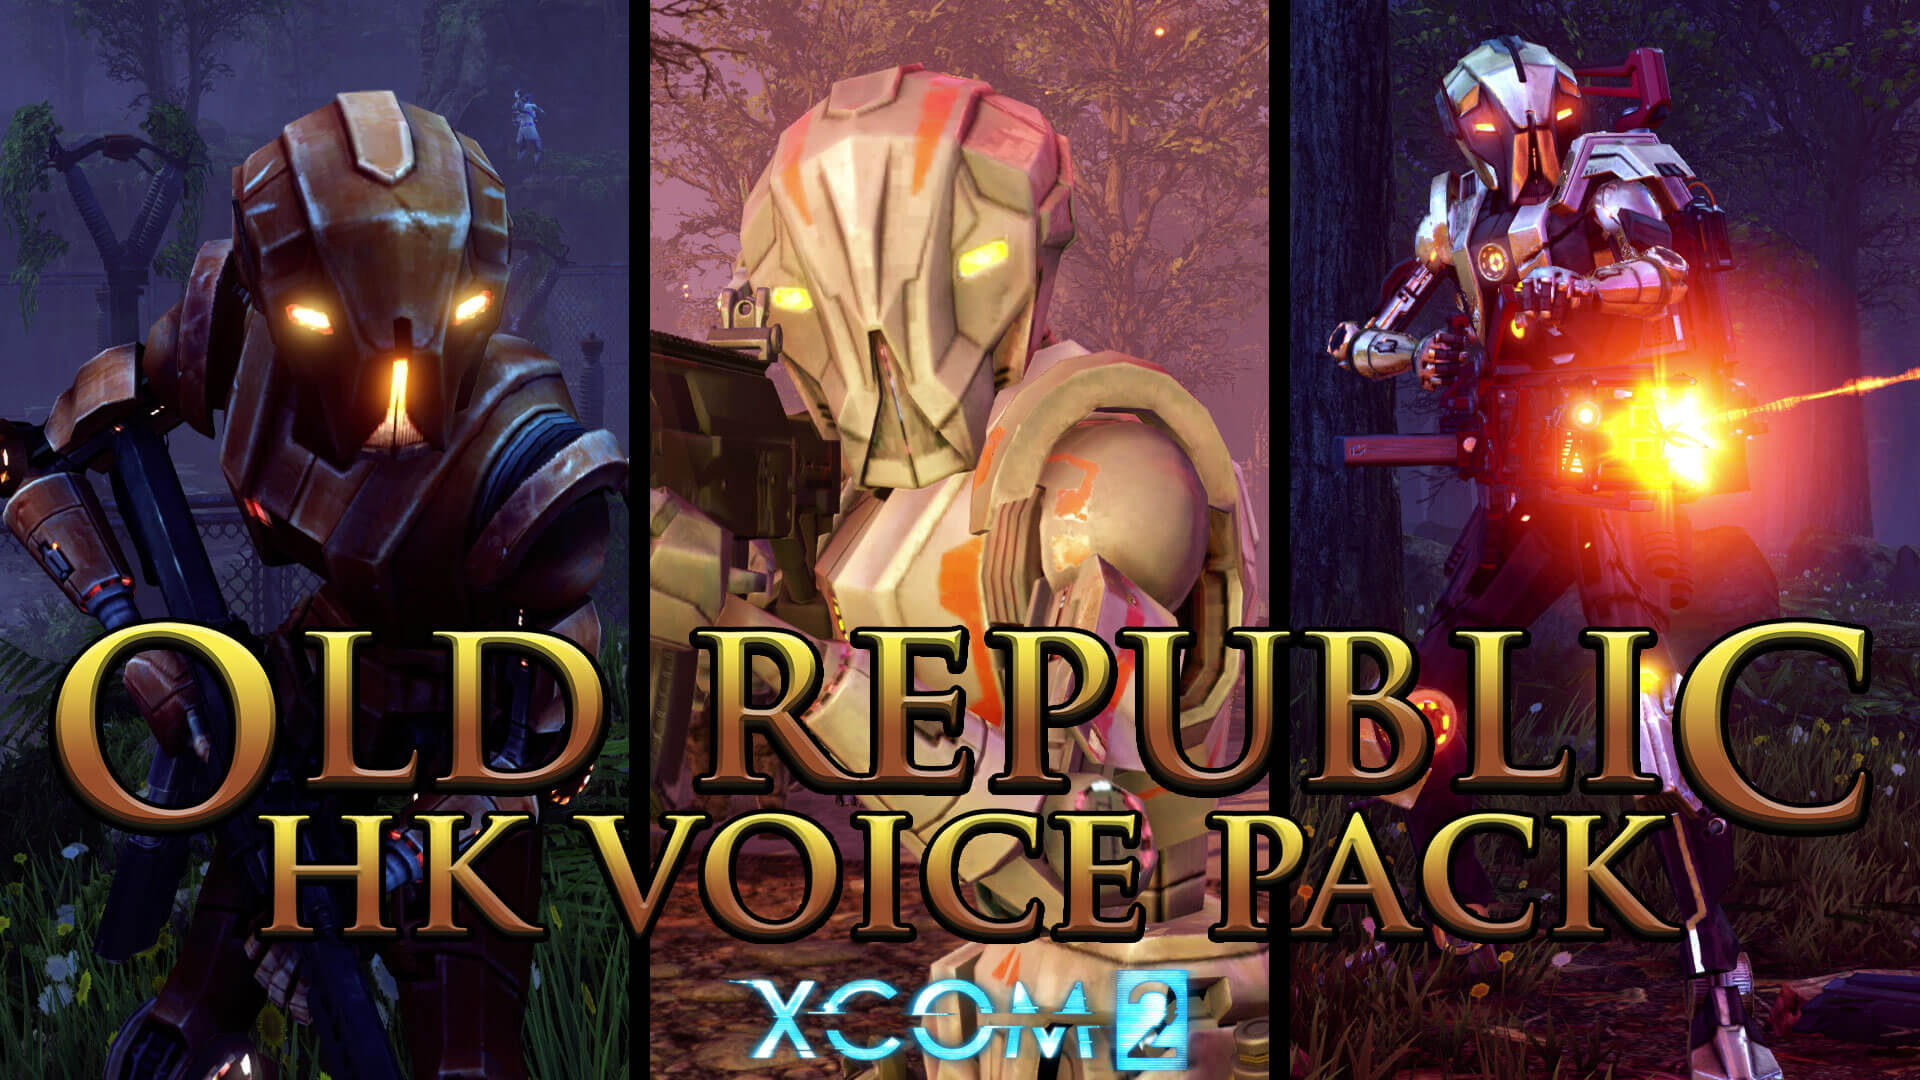 810557656_preview_Old_Republic_HK_Voice_Pack_01